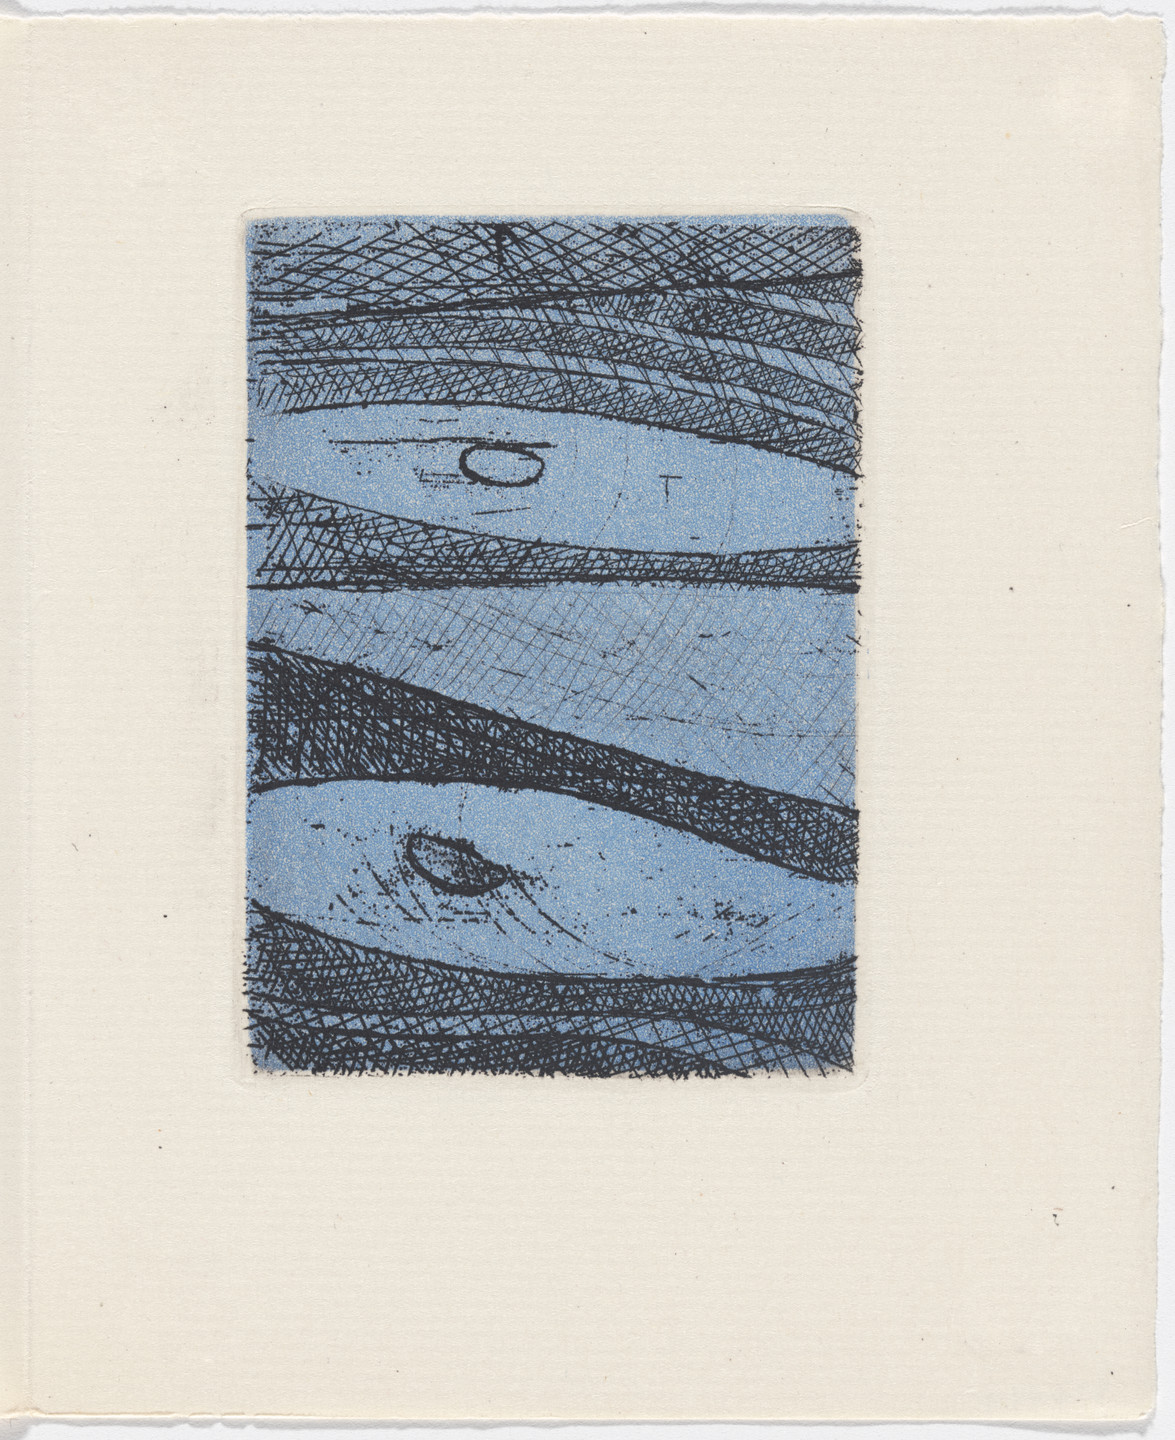 Max Ernst. Plate (page 71) from Monsieur Aa l'antiphilosophe: Volume I from L'Antitête. 1947–49, published 1949